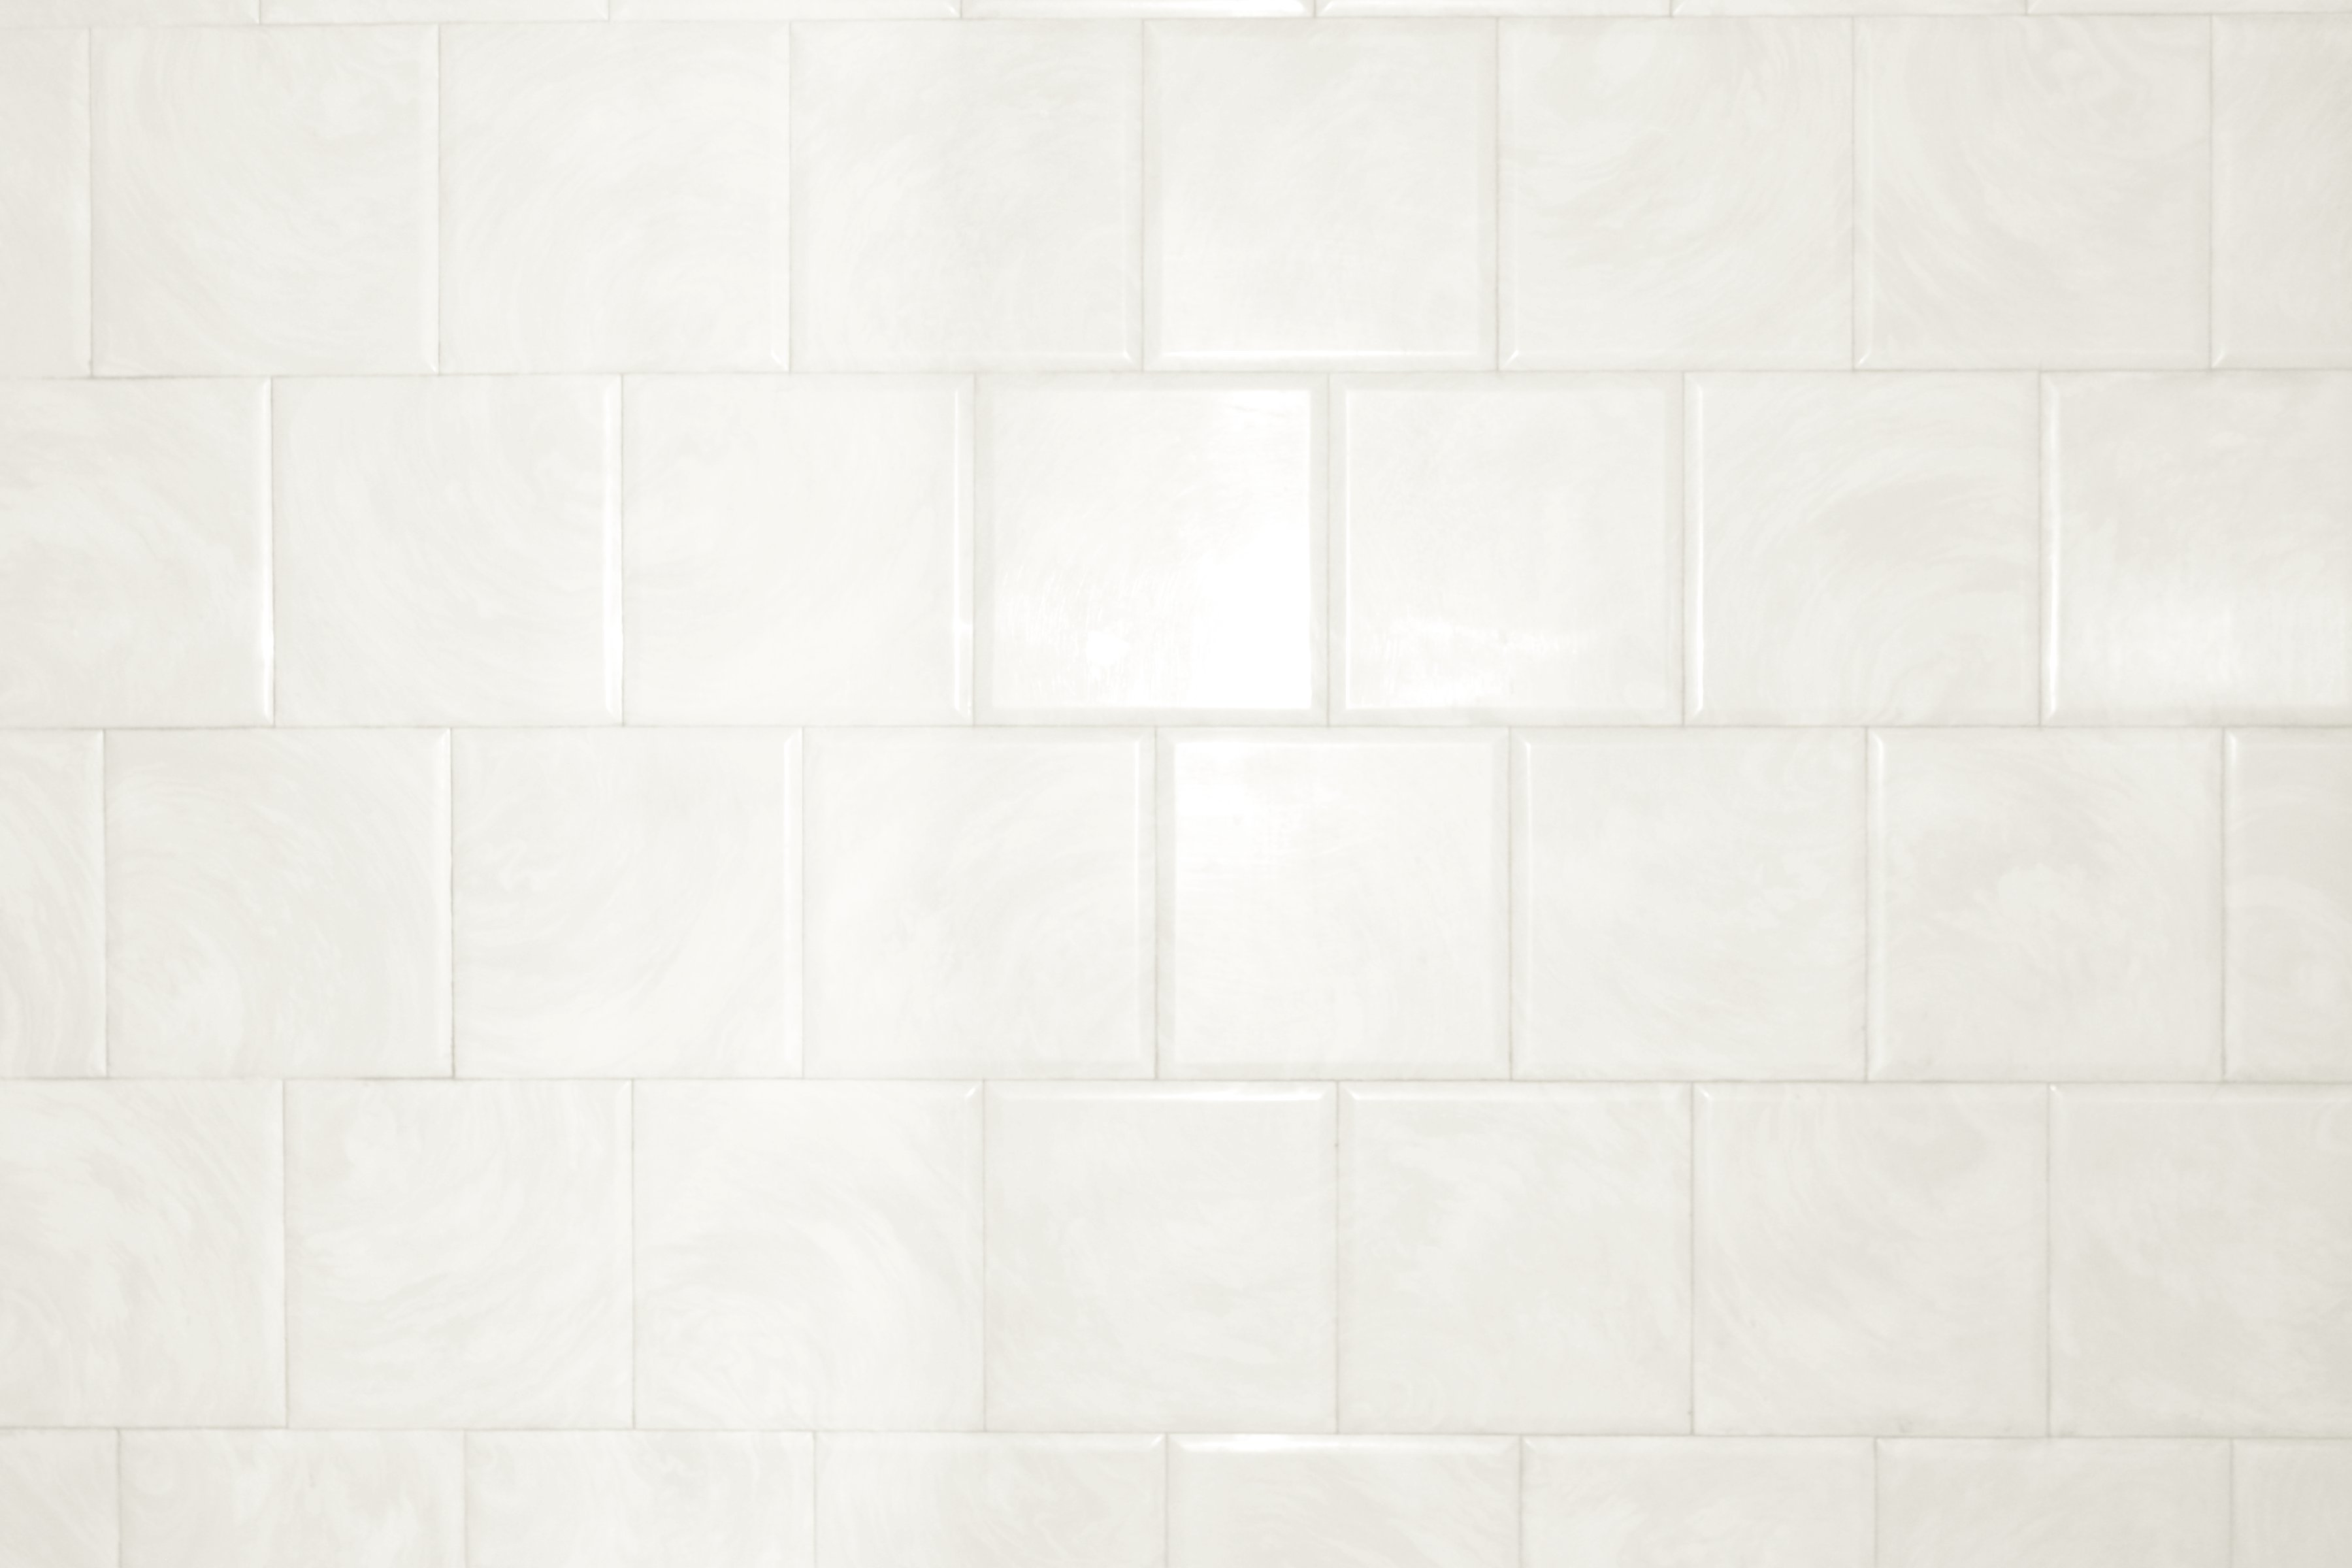 Ivory or Off White Bathroom Tile with Swirl Pattern Texture Picture 3600x2400